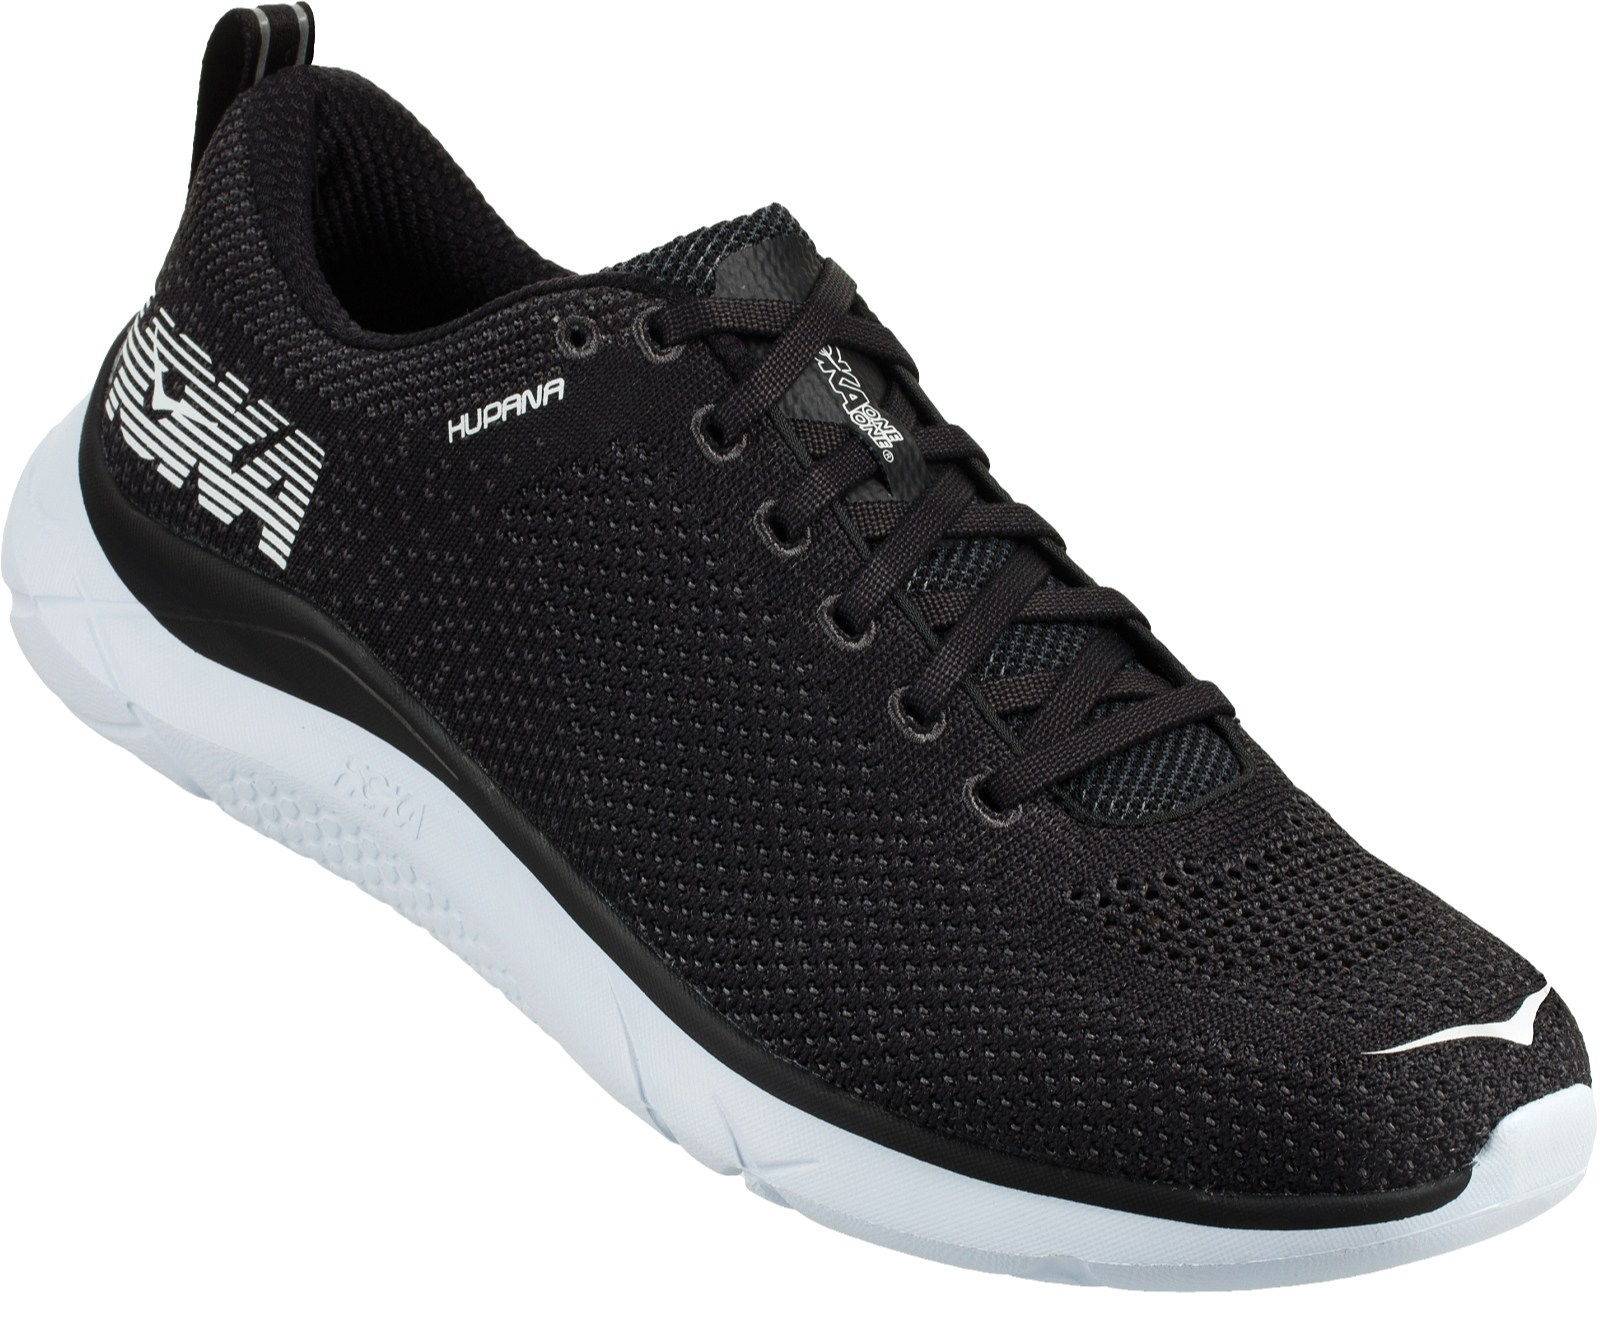 HOKA ONE ONE Hupana 2 Road-Running Shoes - Men's